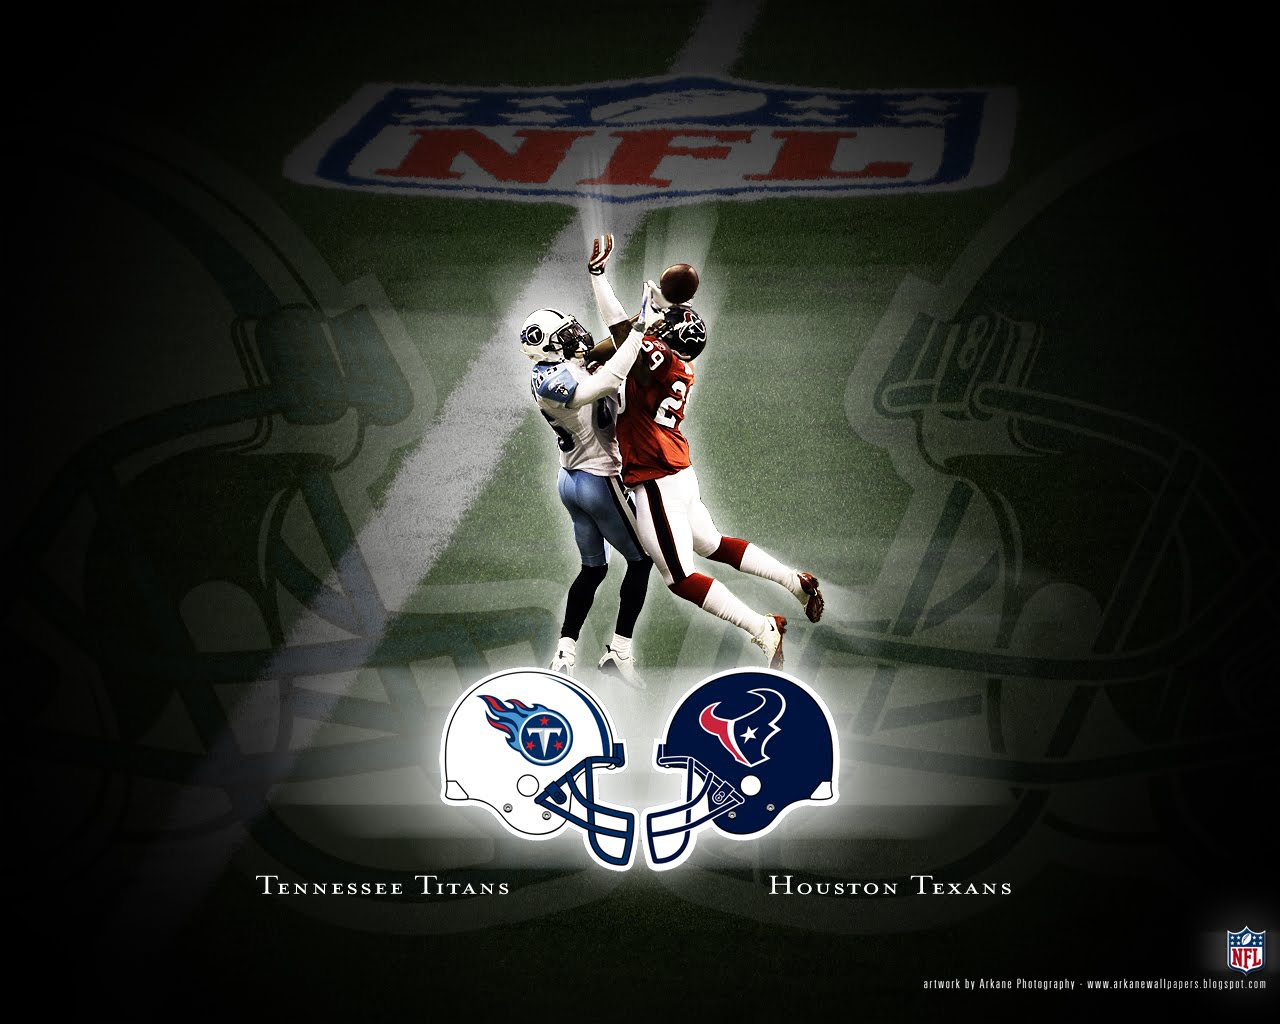 Tennessee Titans bet at home kod rabatowy na sierpień 2014 ujemne saldo bet at home NFL Schedule Printable